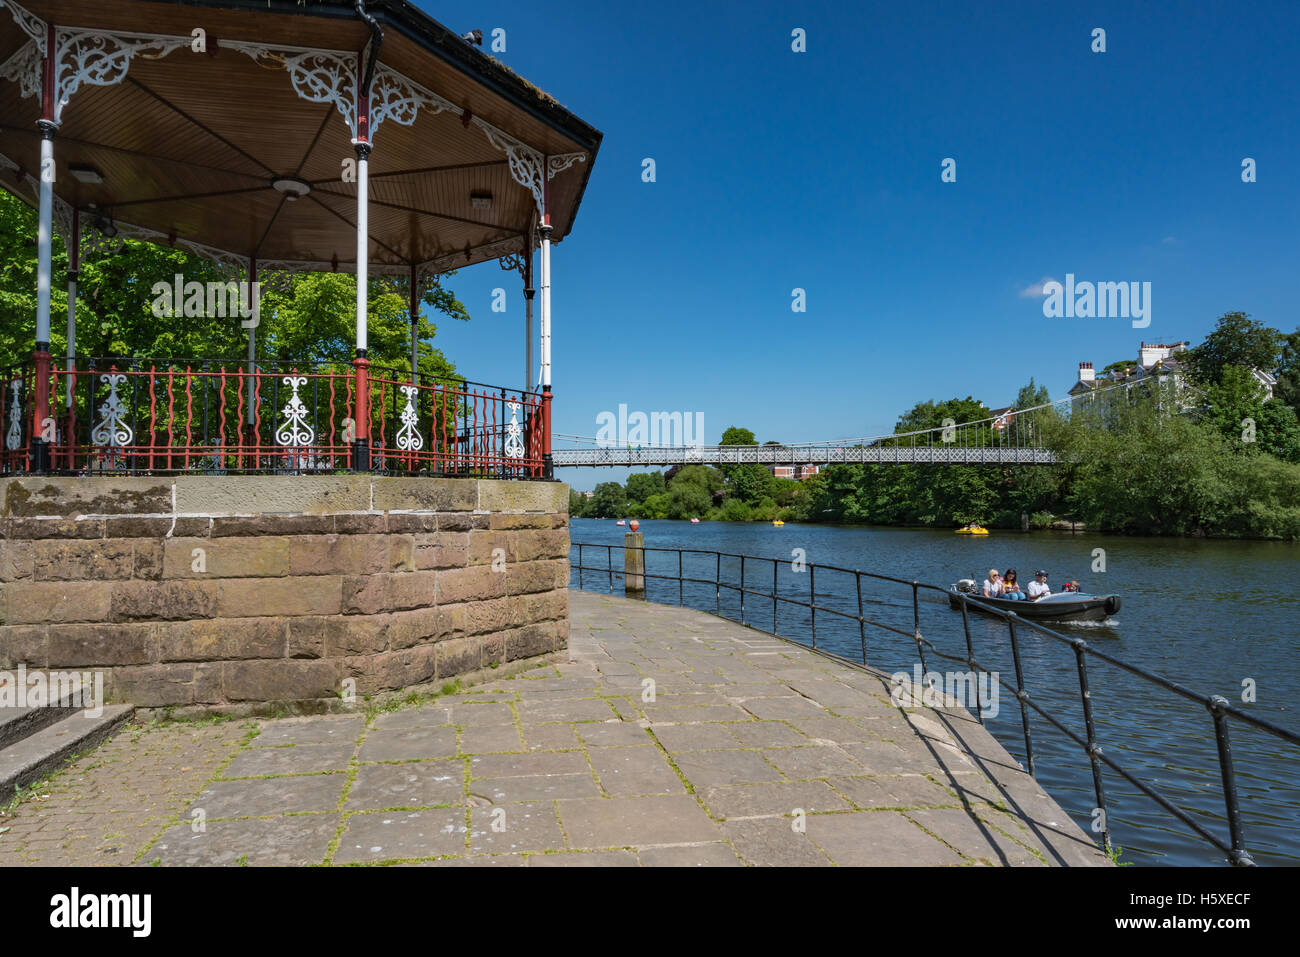 Family in hired motorboat pass the bandstand at Chester Groves on the River Dee - Stock Image